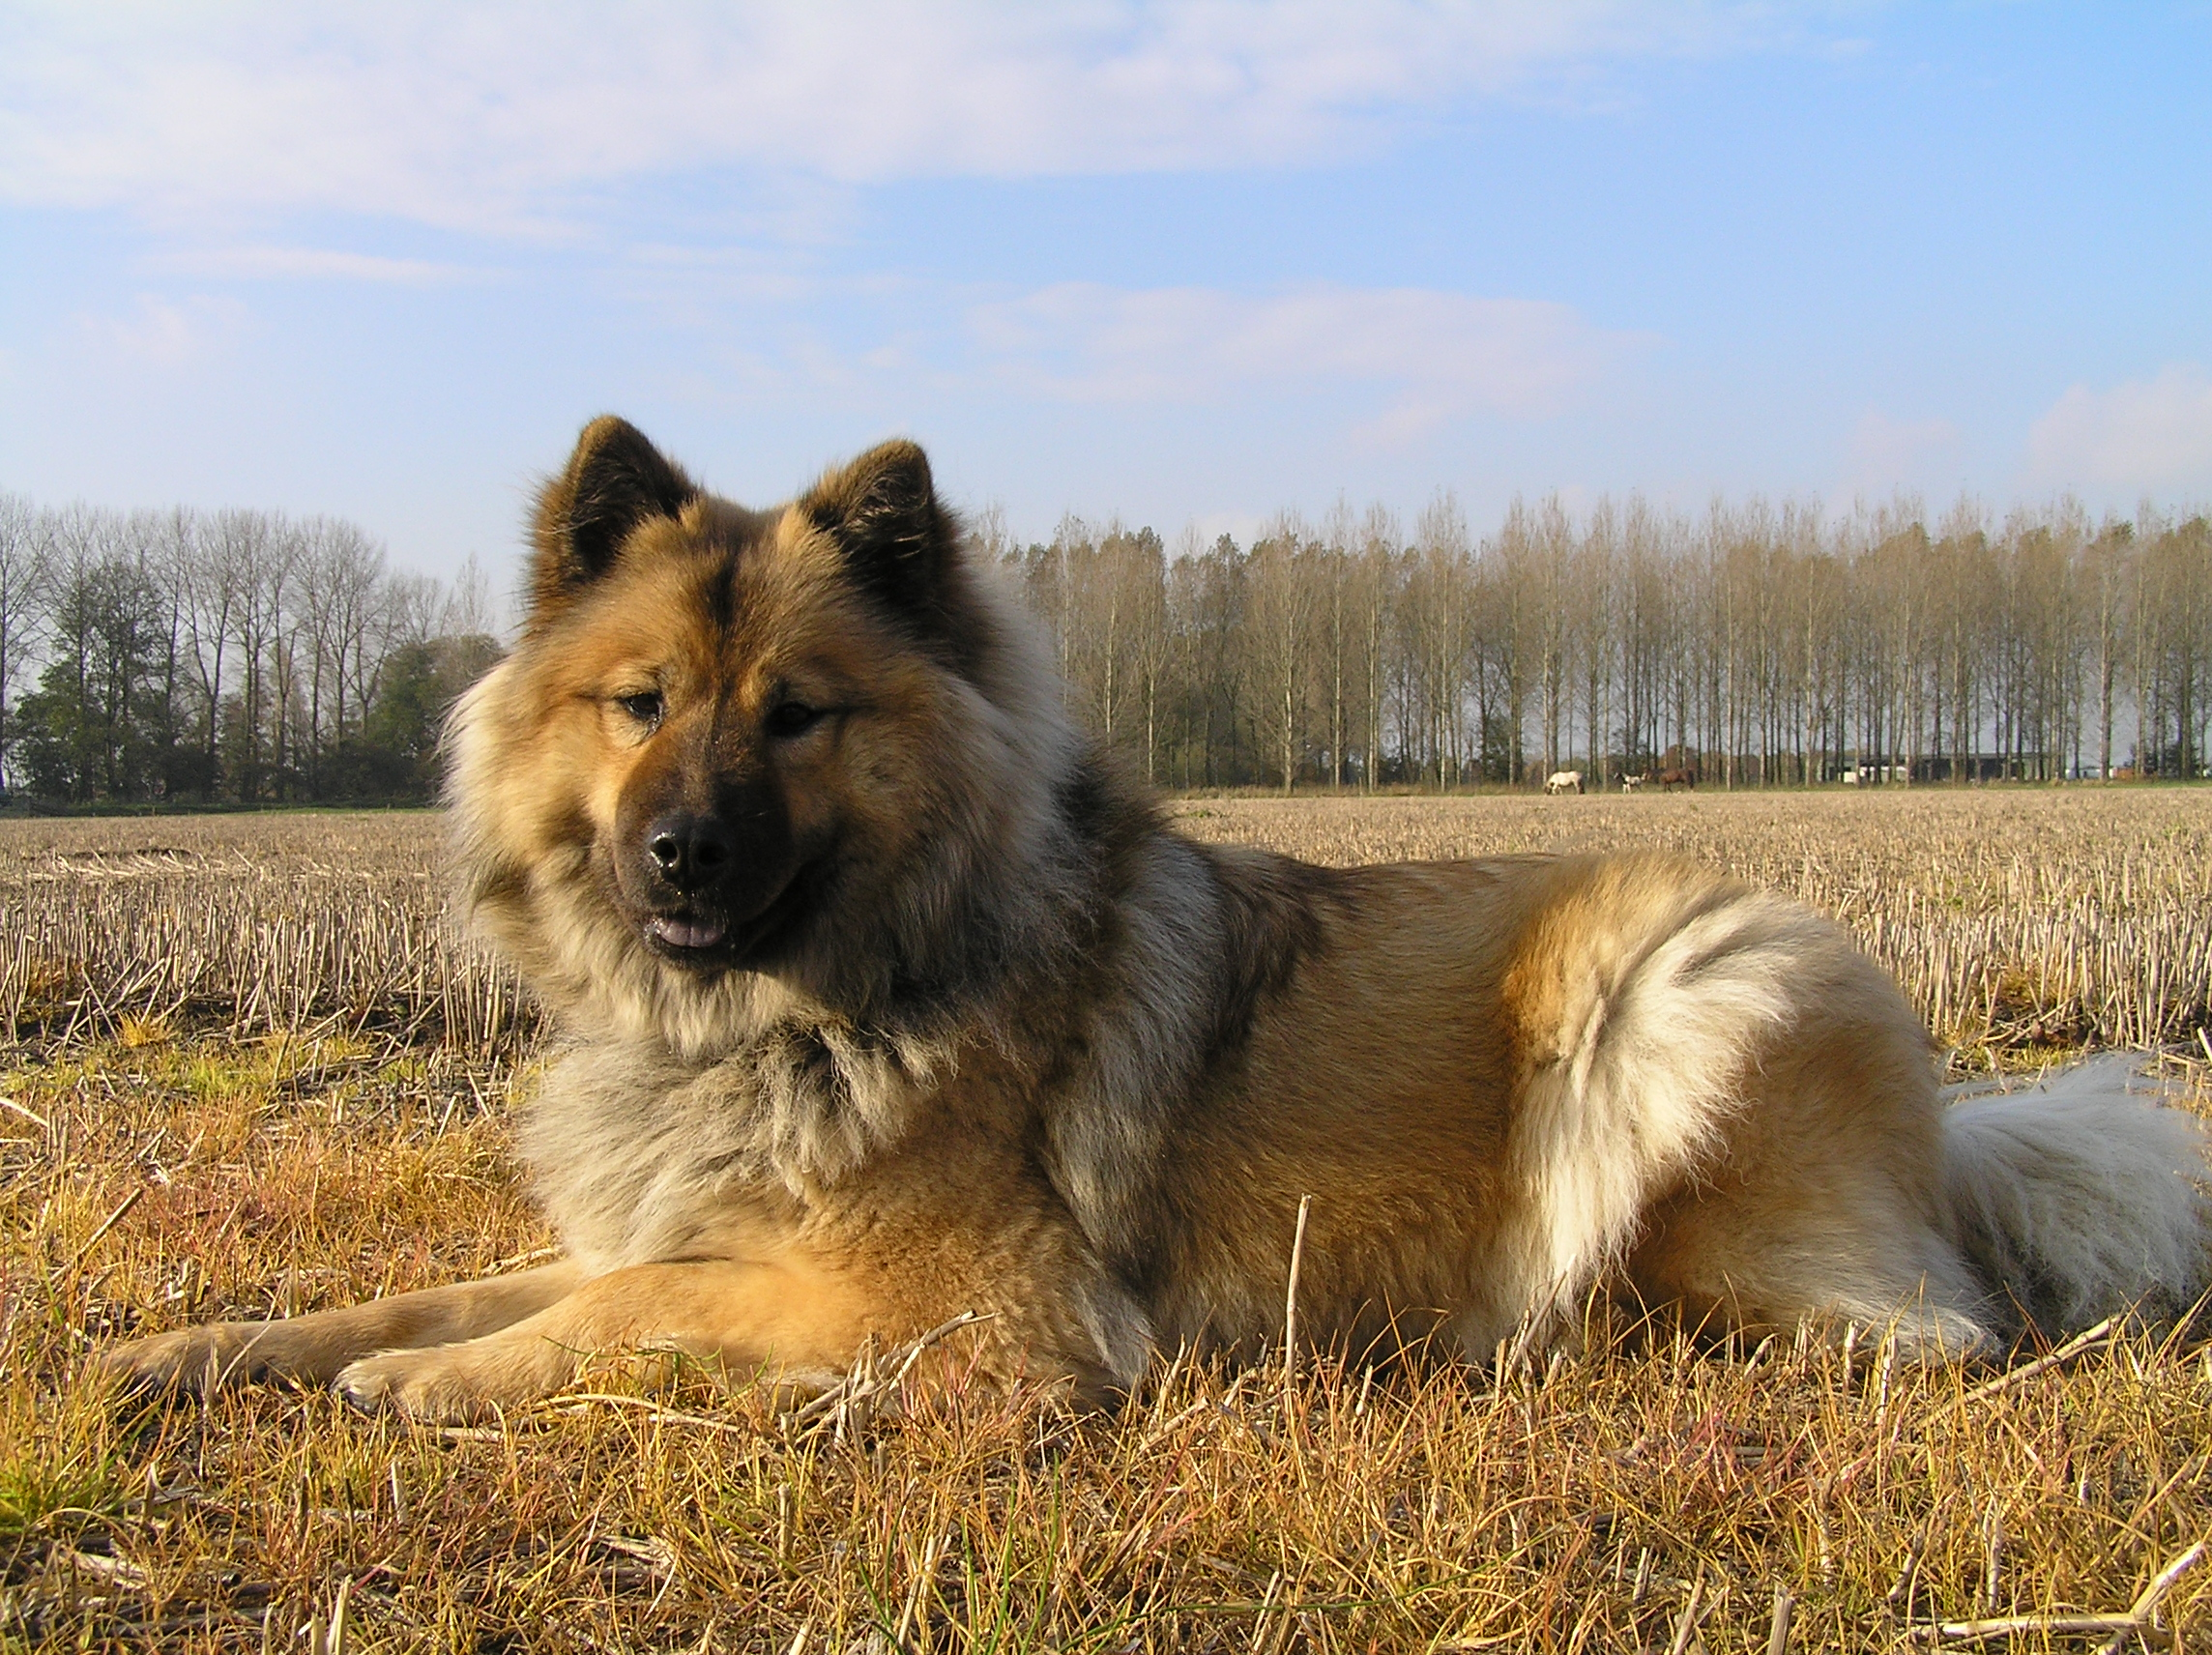 http://upload.wikimedia.org/wikipedia/commons/4/41/Eurasier.jpg